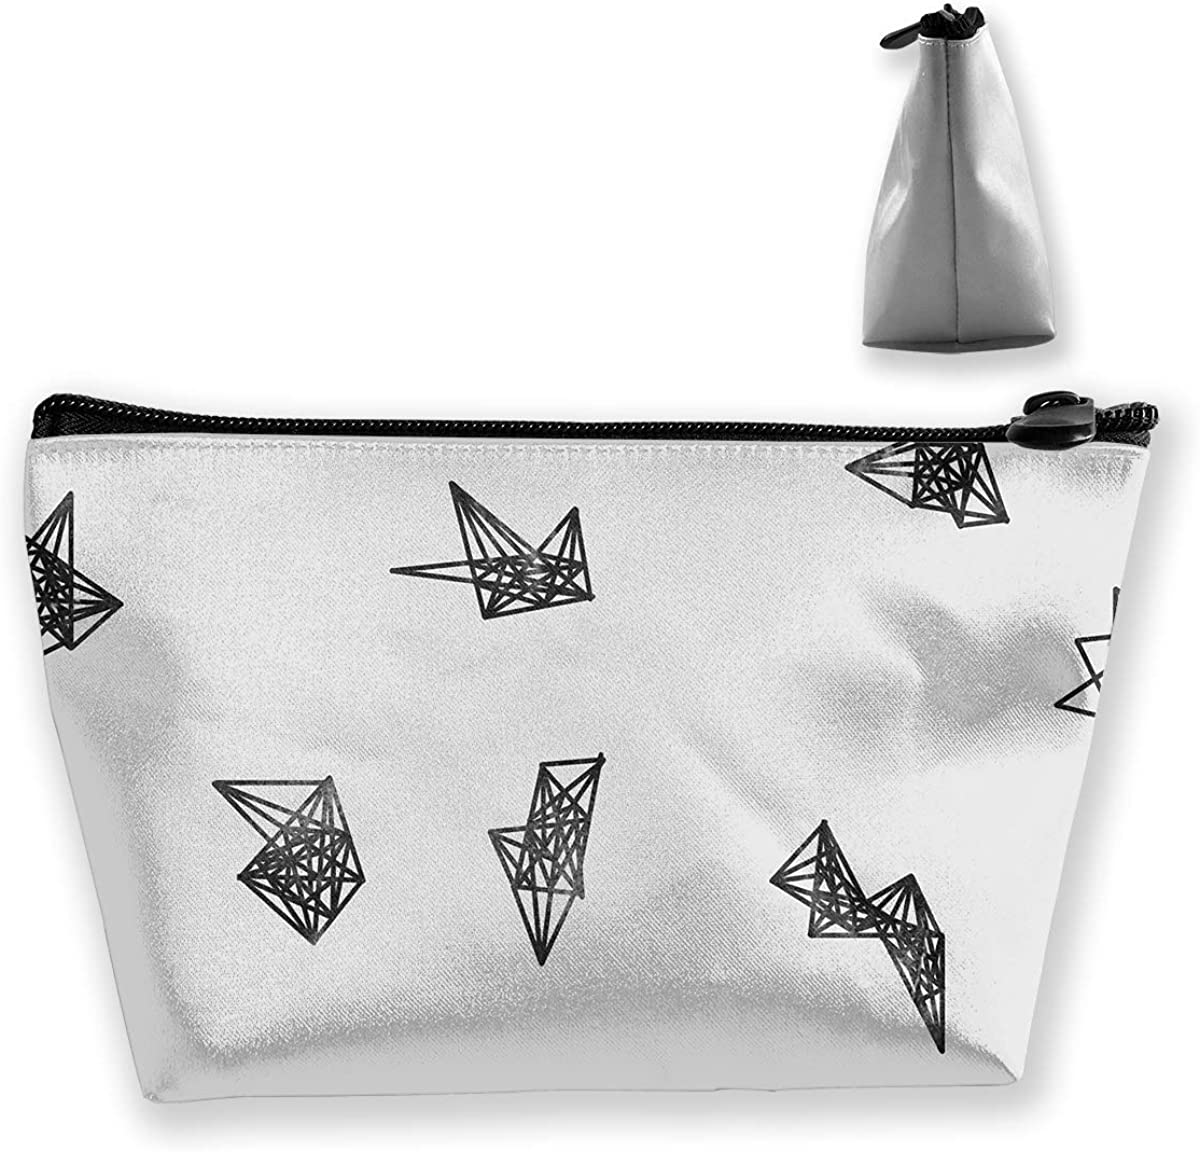 Image result for origami paper pocket pouch | Origami envelope ... | 1156x1200